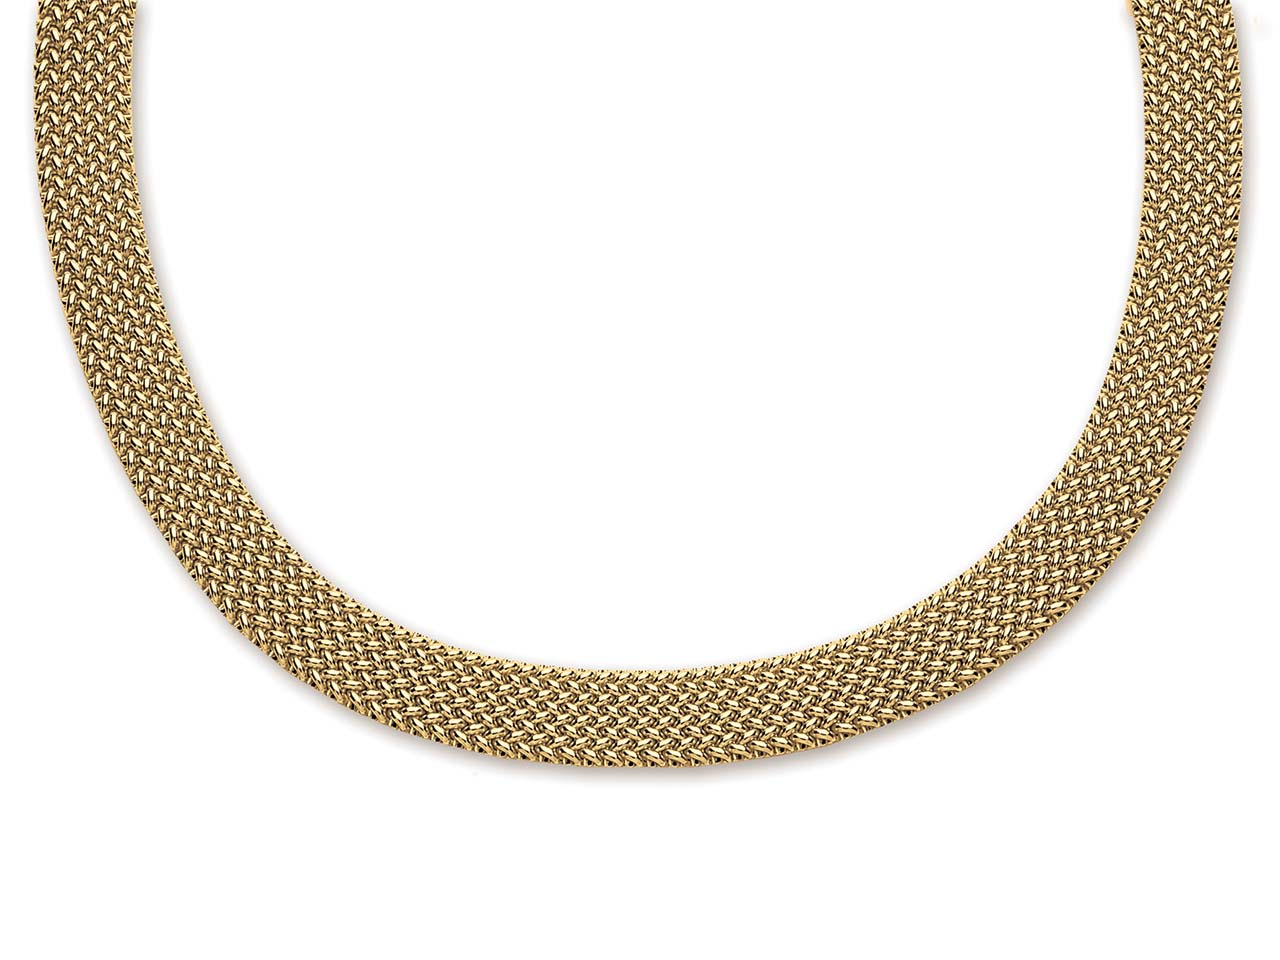 Collier 5580, maille polonaise, Or Jaune, 41 cm